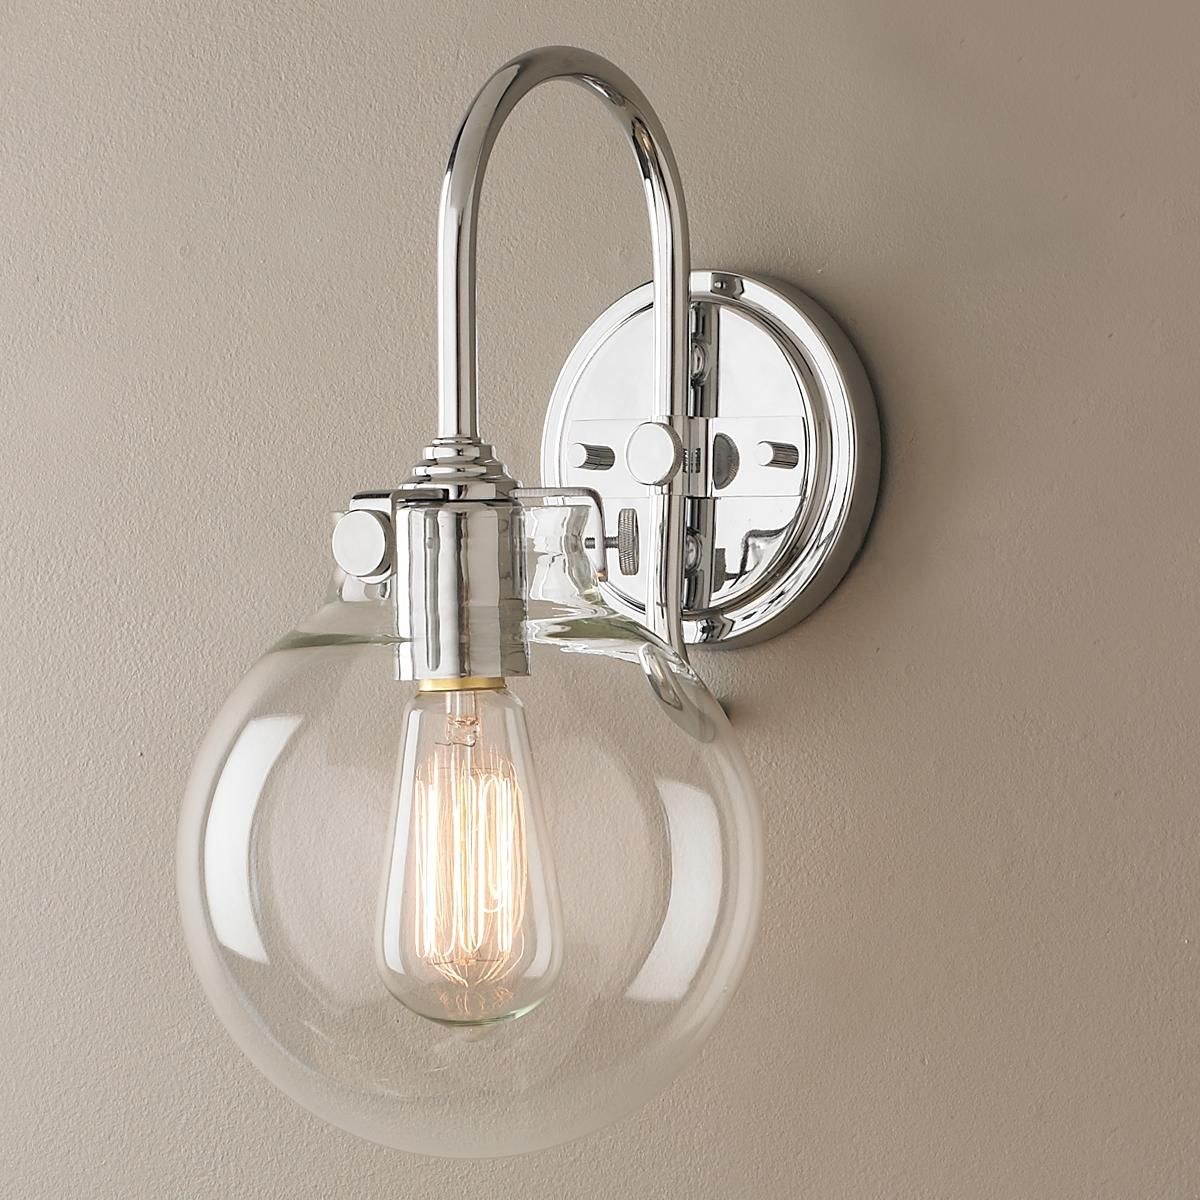 retro glass globe wall sconce (with images) | bathroom